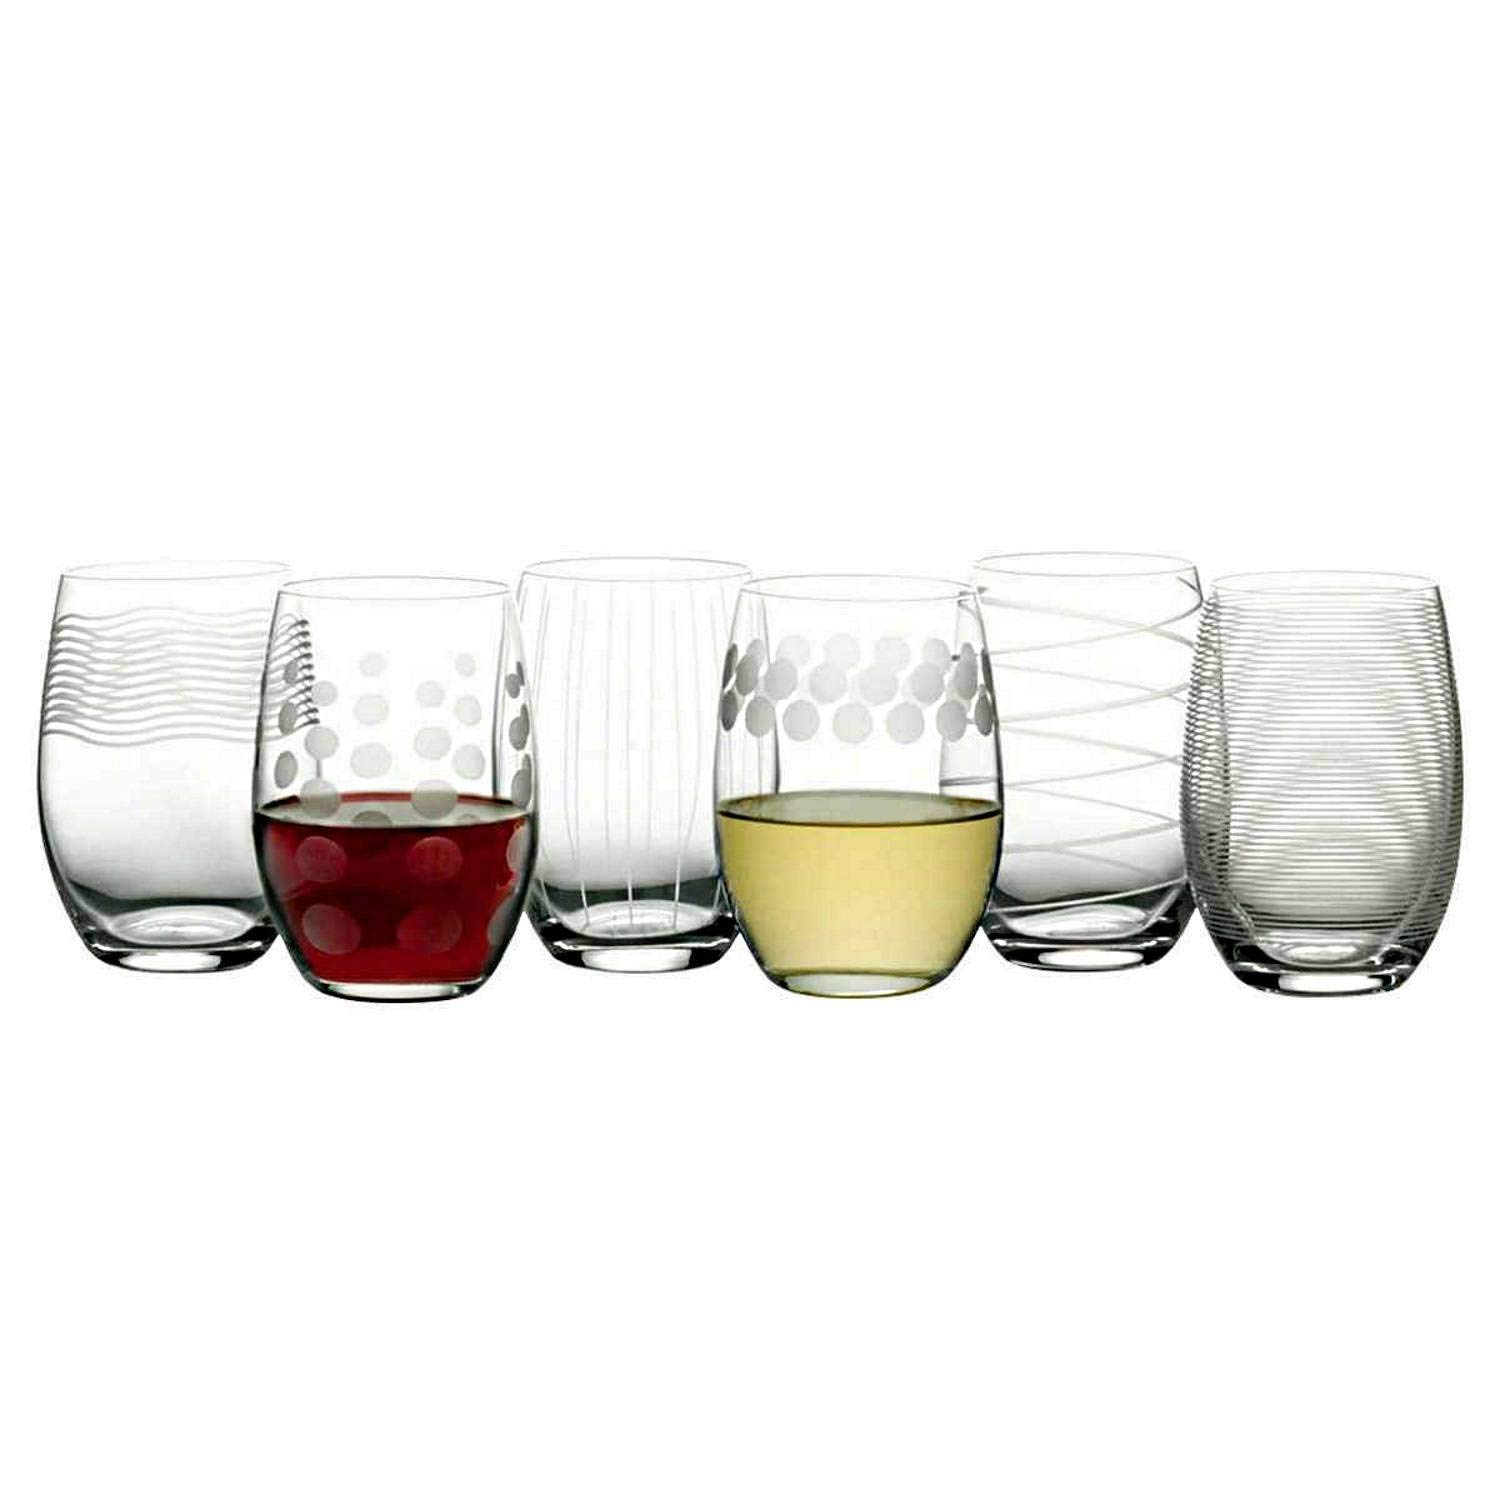 Mikasa Cheers Stemless Etched Wine Glasses, Fine European Lead-Free Crystal, 17-Ounces for Red or White Wine - Set of 6 by Mikasa